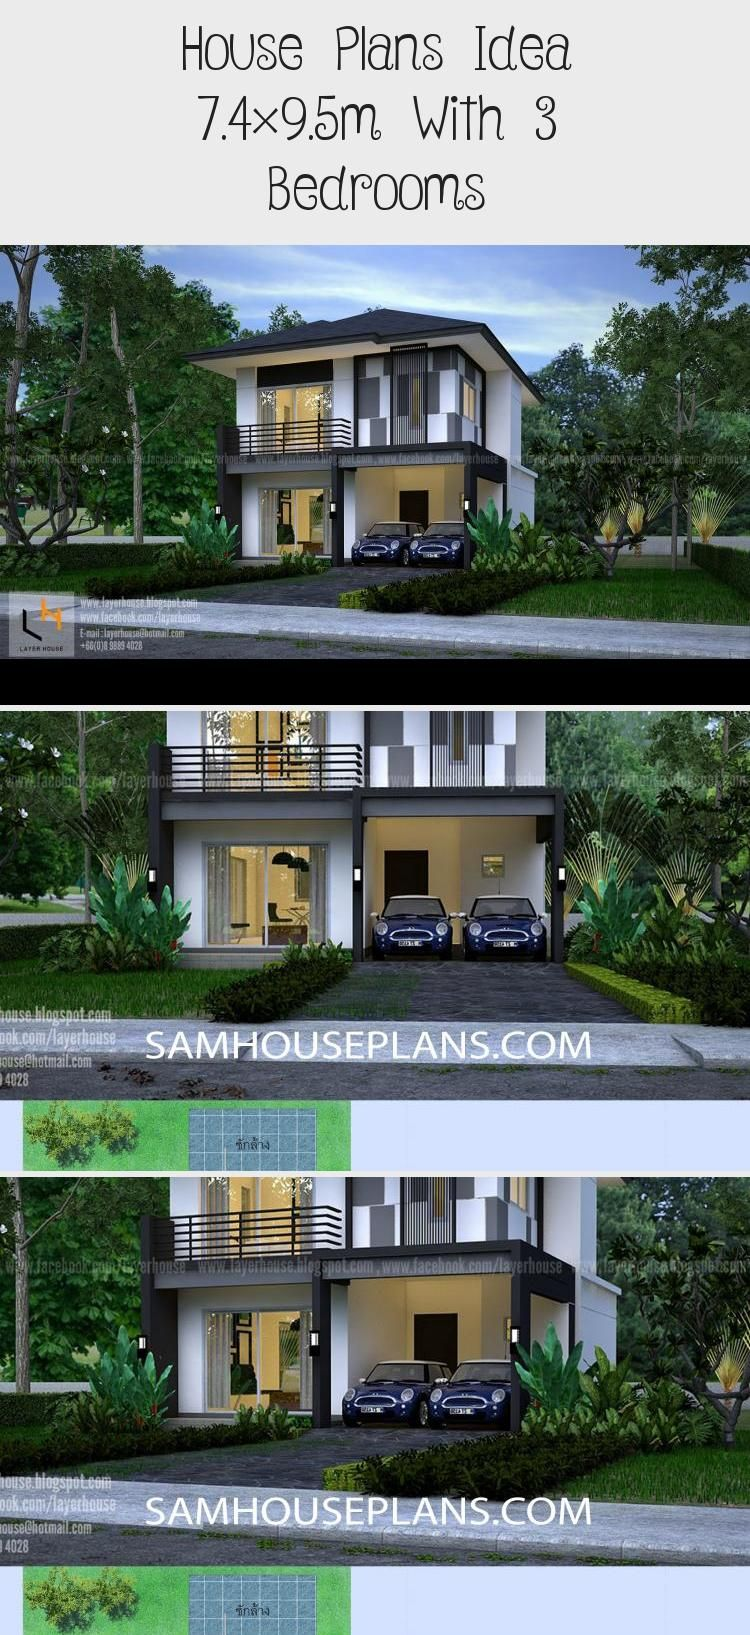 House Plans Idea 7 4 9 5m With 3 Bedrooms In 2020 House Plans Small House Plans